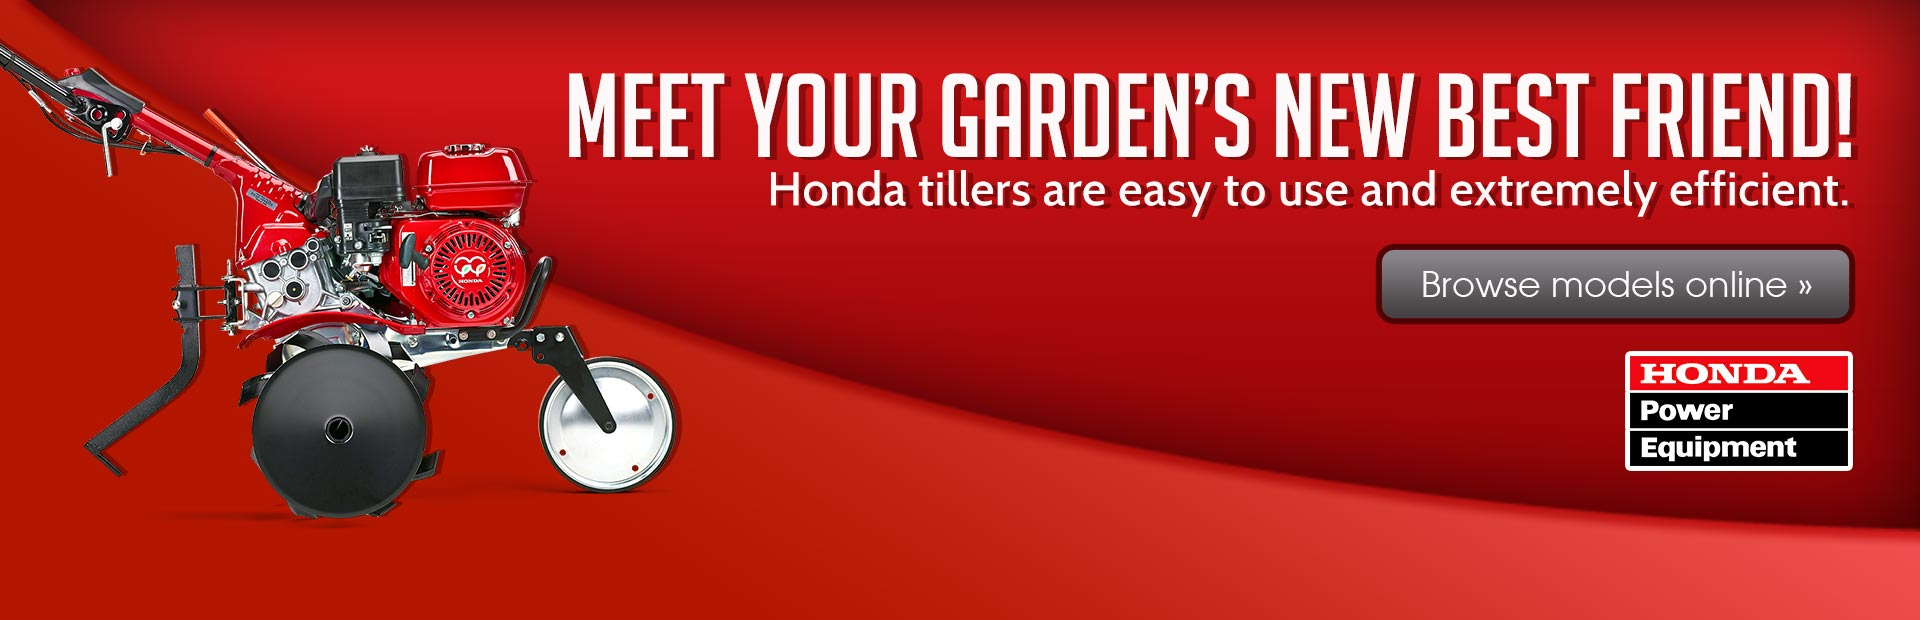 Meet your garden's new best friend! Honda tillers are easy to use and extremely efficient. Click here to browse the models.